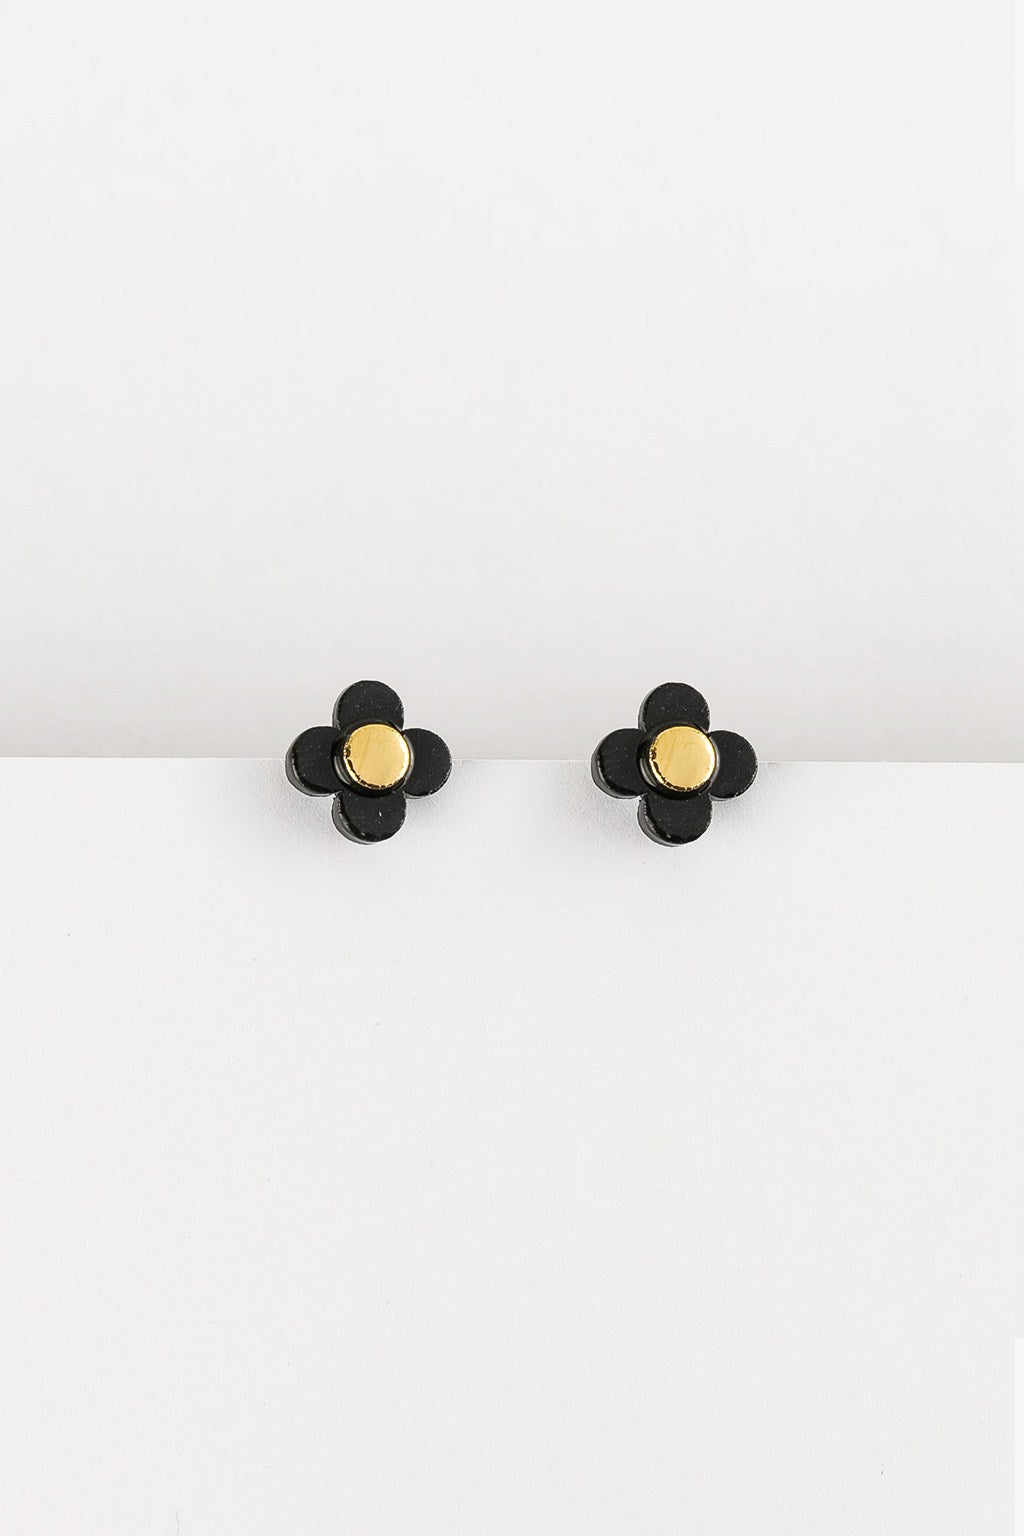 Erin Lightfoot-Flower Stud Earrings -Black-Mott and Mulberry